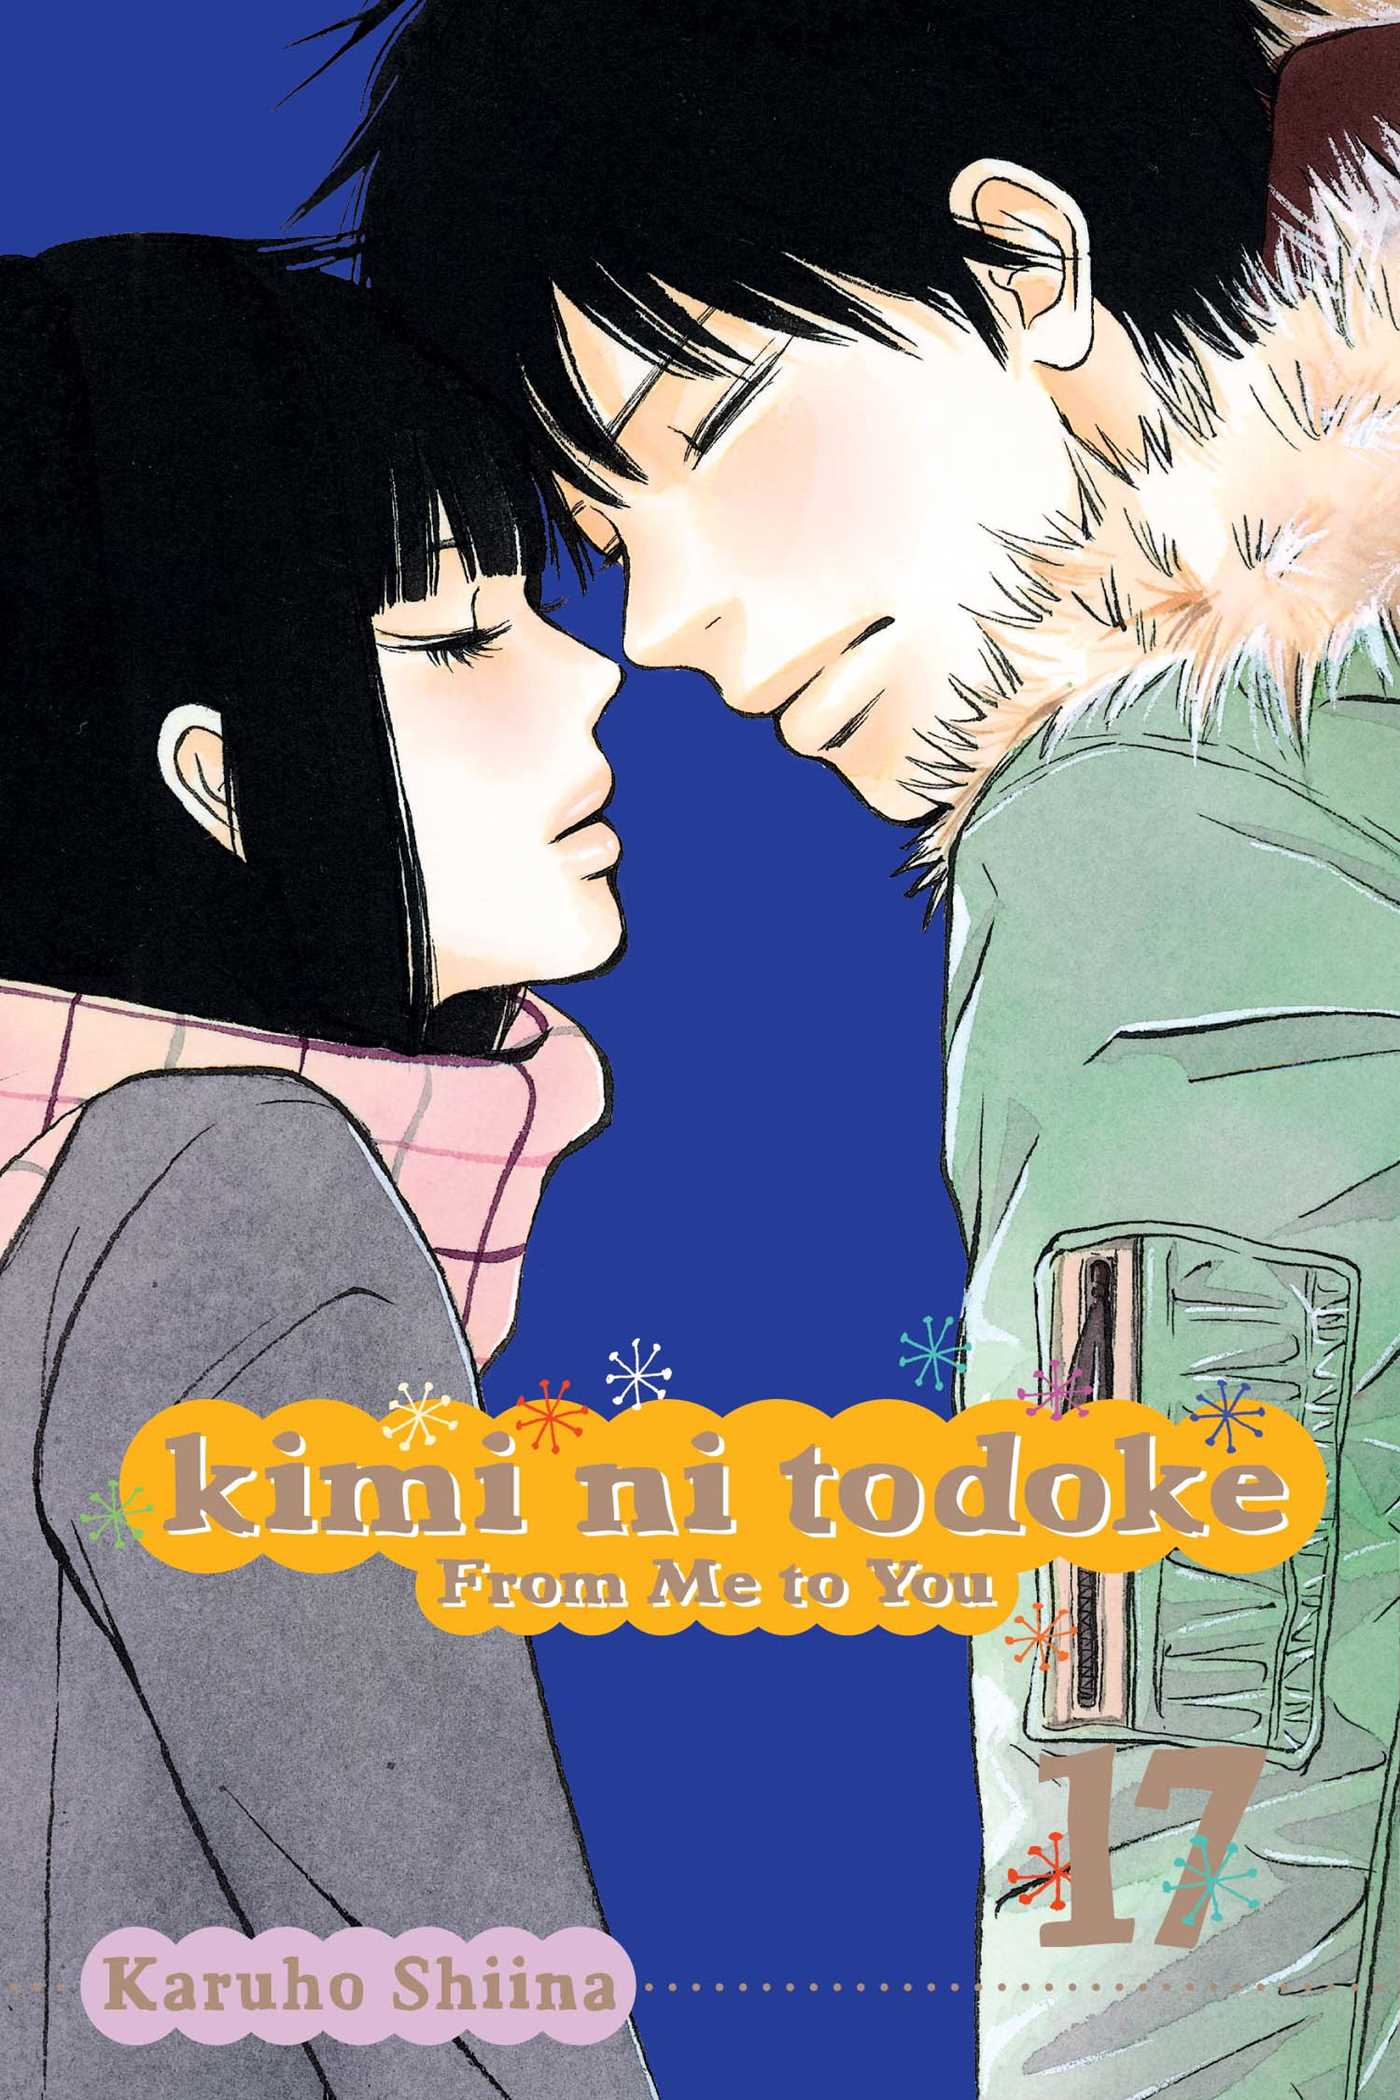 Kimi ni todoke from me to you vol 17 9781421554785 hr